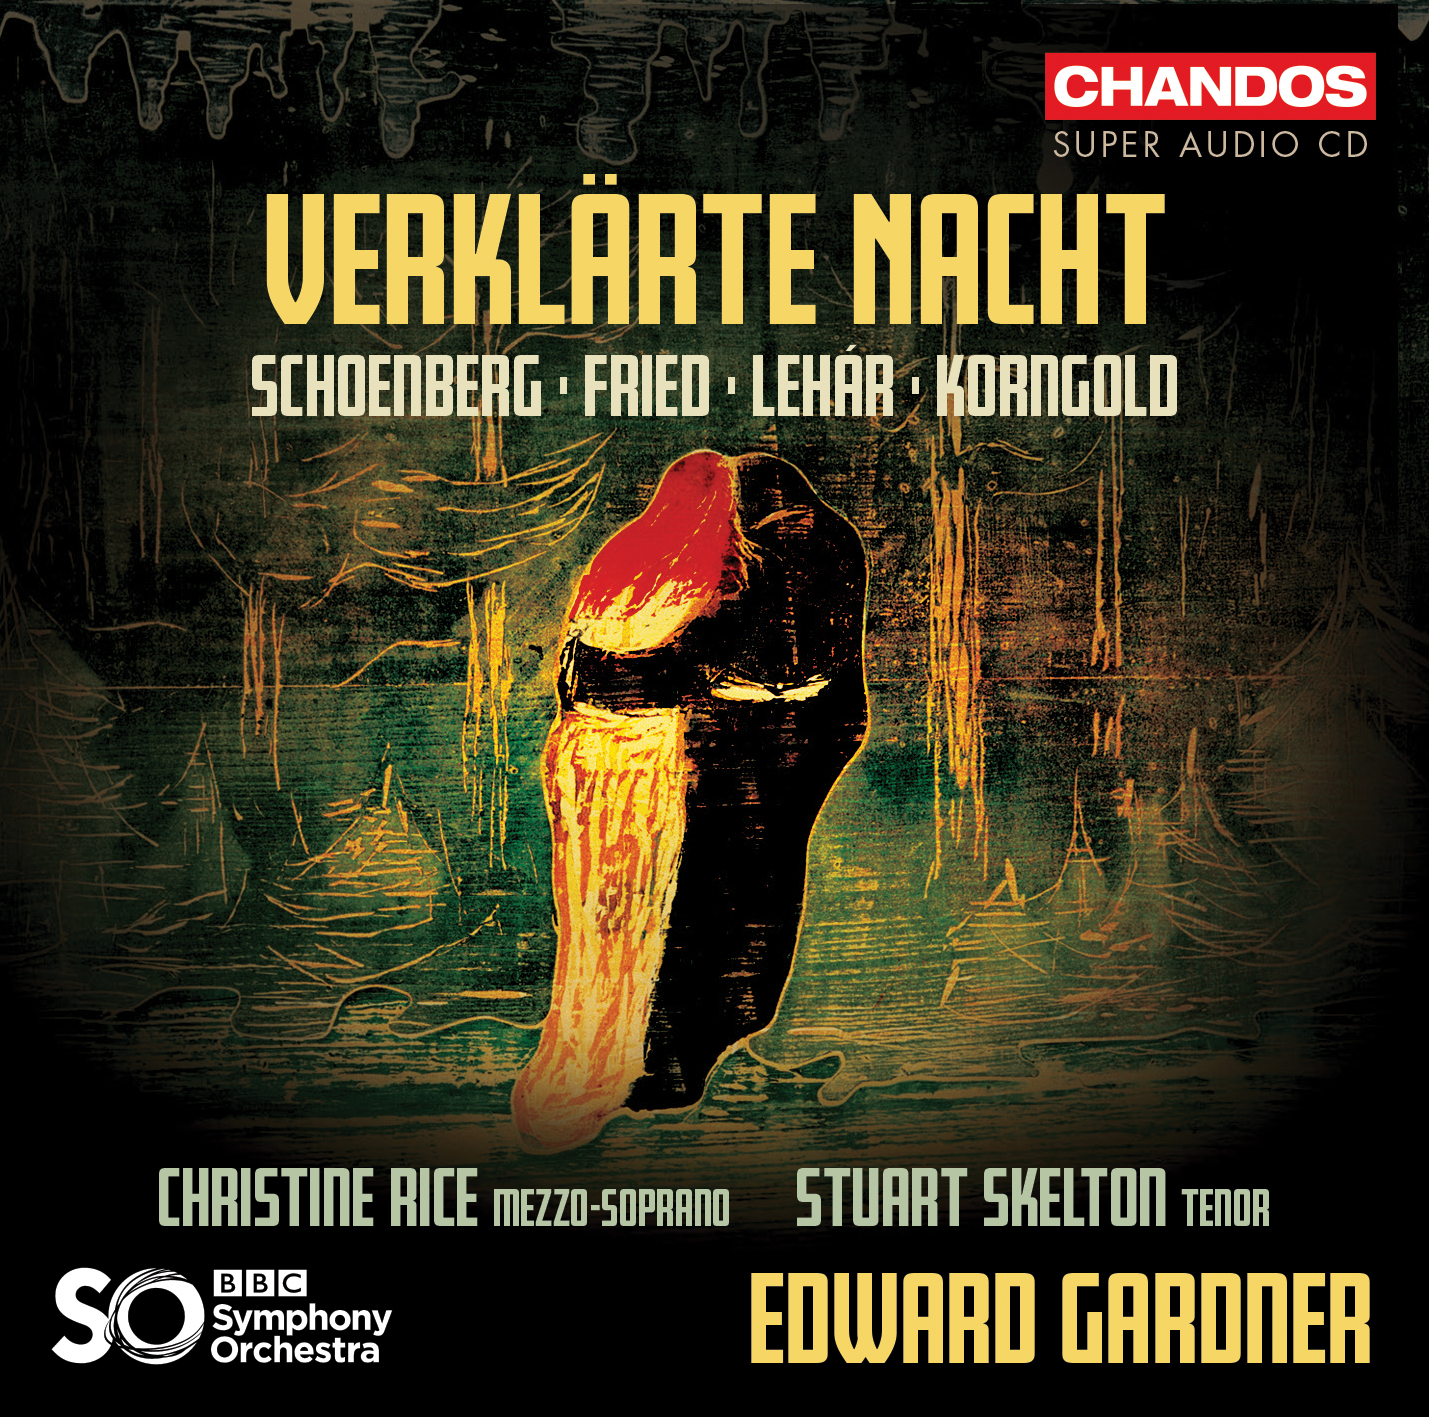 German Orchestral Songs Etc Vocal Song Chandos